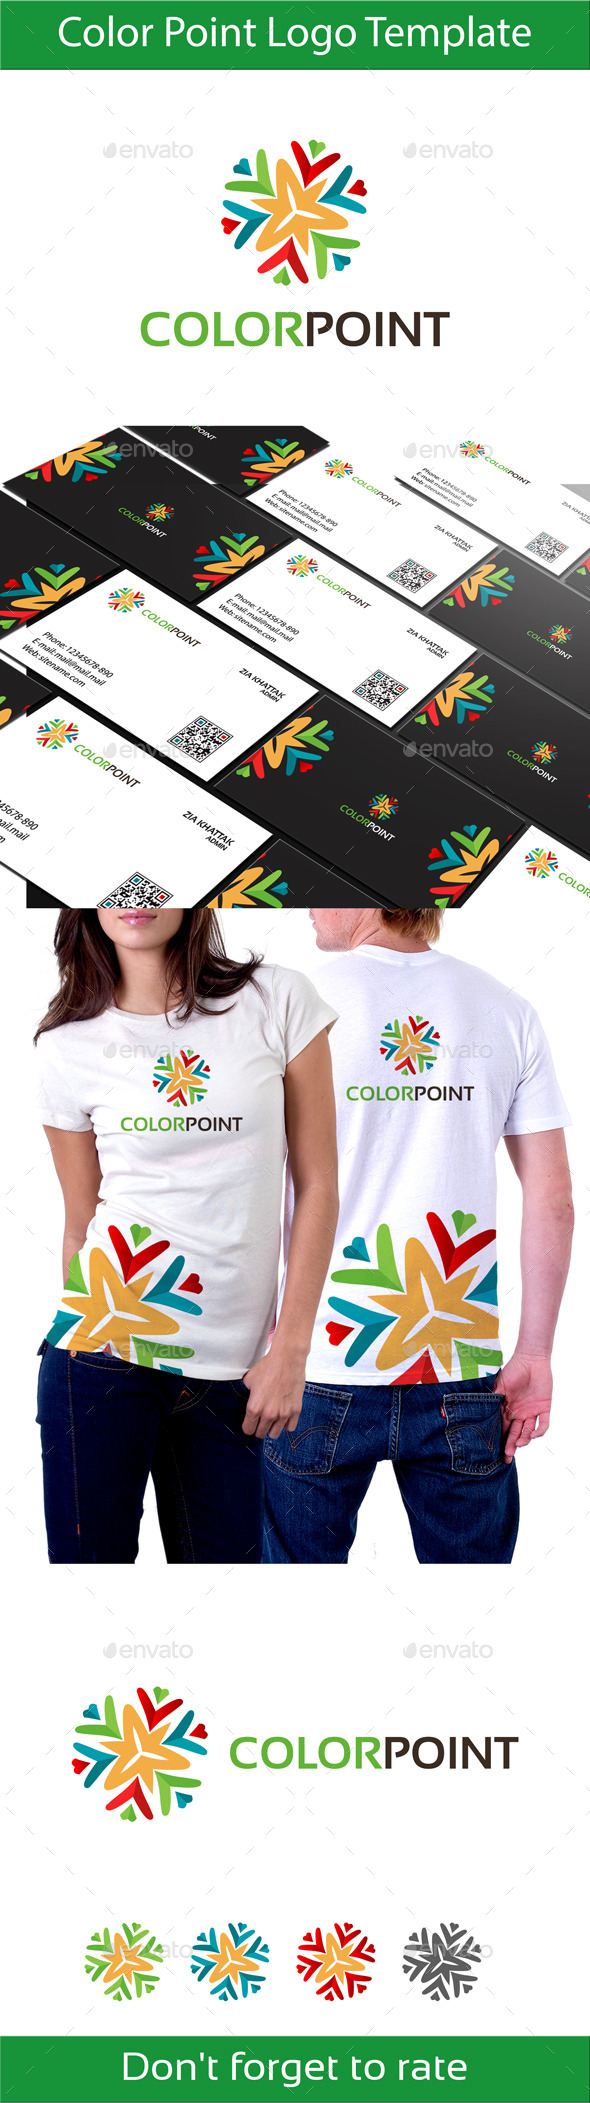 Color Point Logo - Vector Abstract